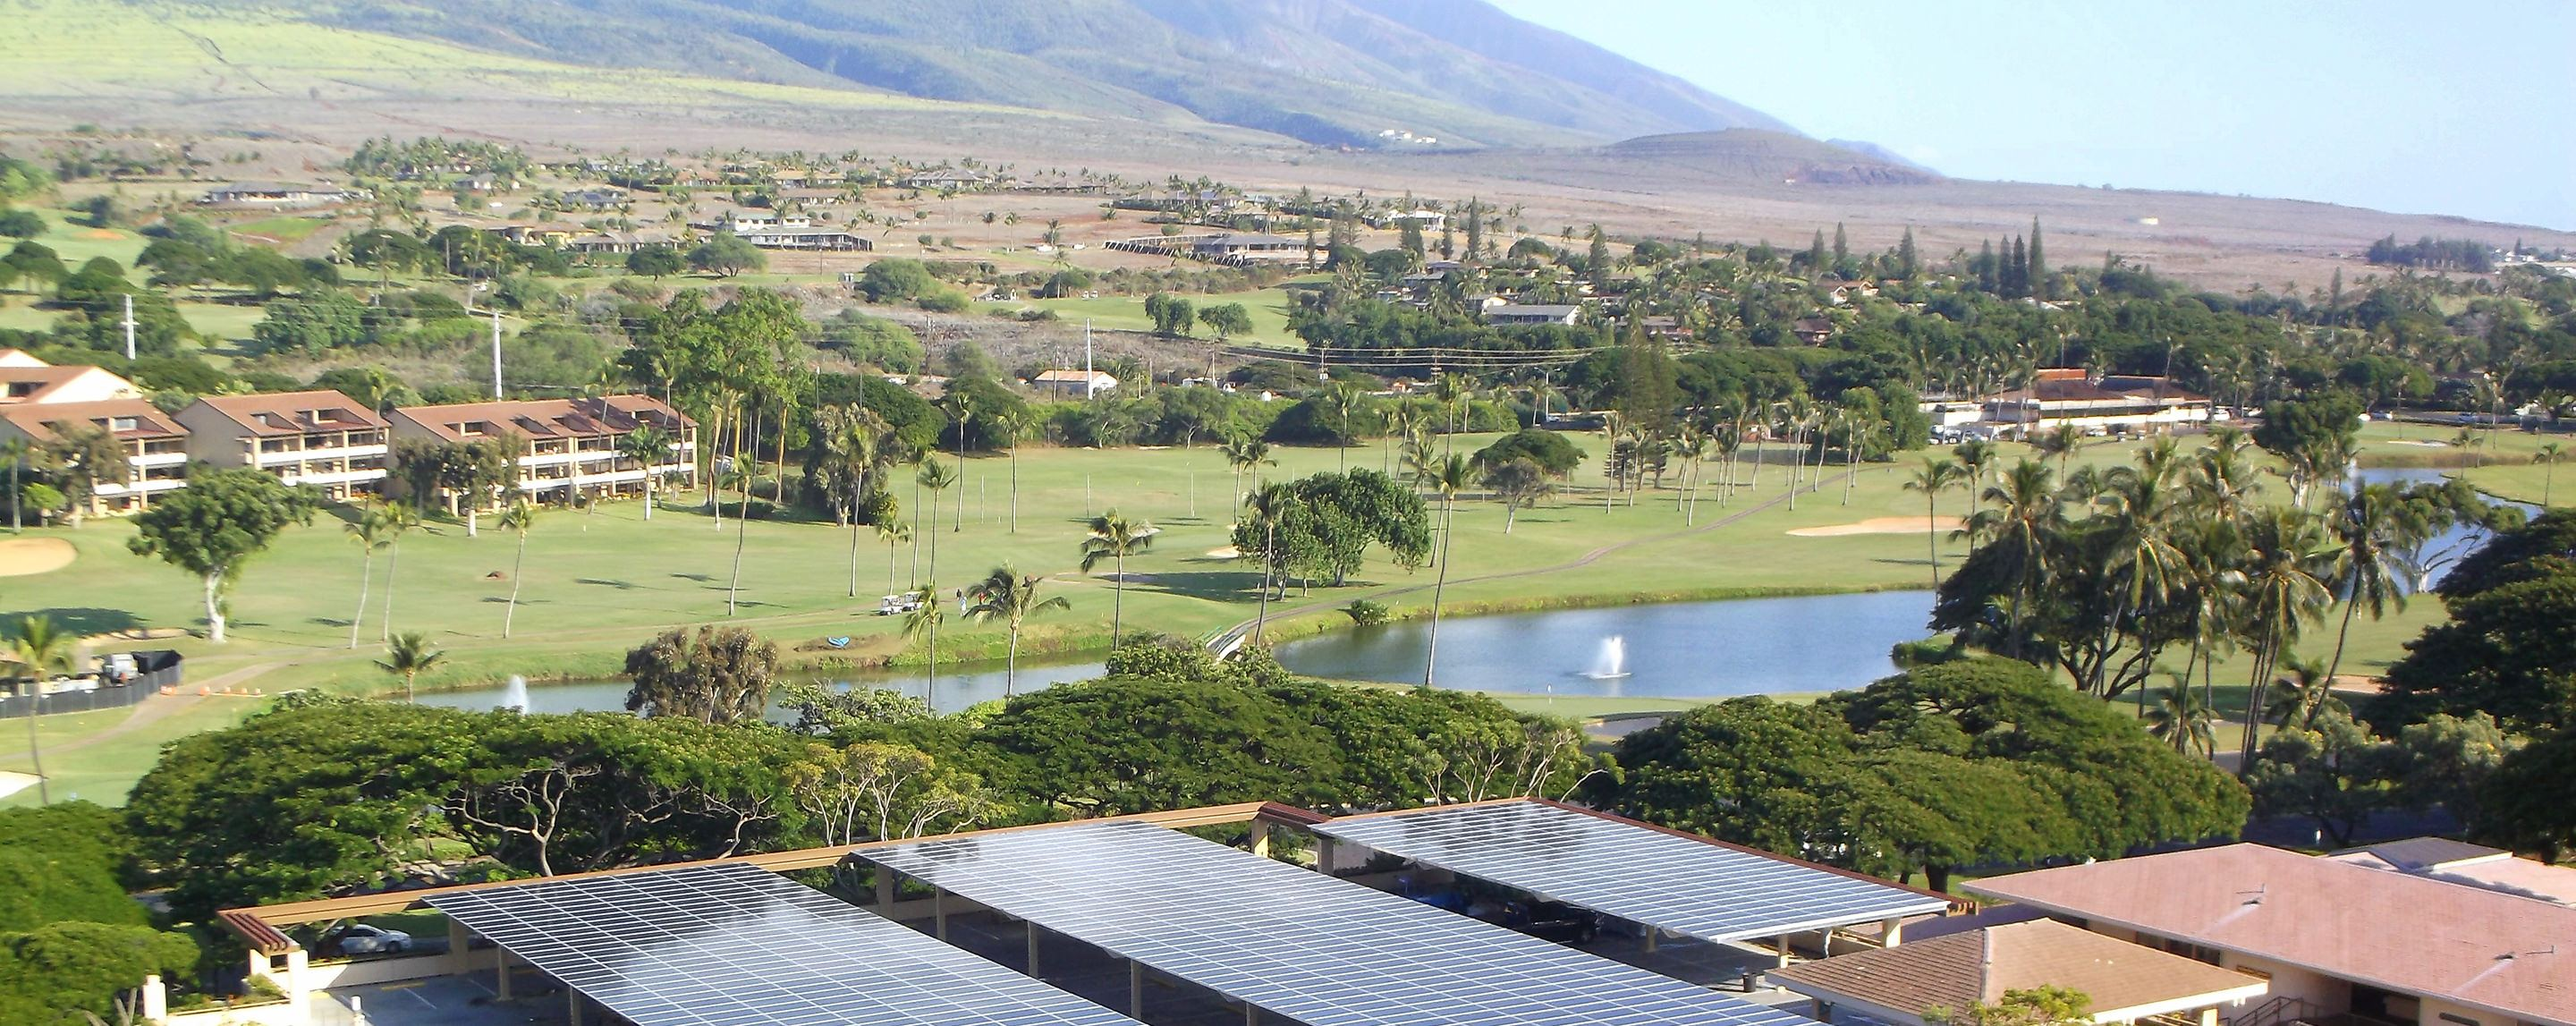 At dusk, a pond welcomes visitors outside of the Oakbrook Center entrance, which is lined with street lamps and trees